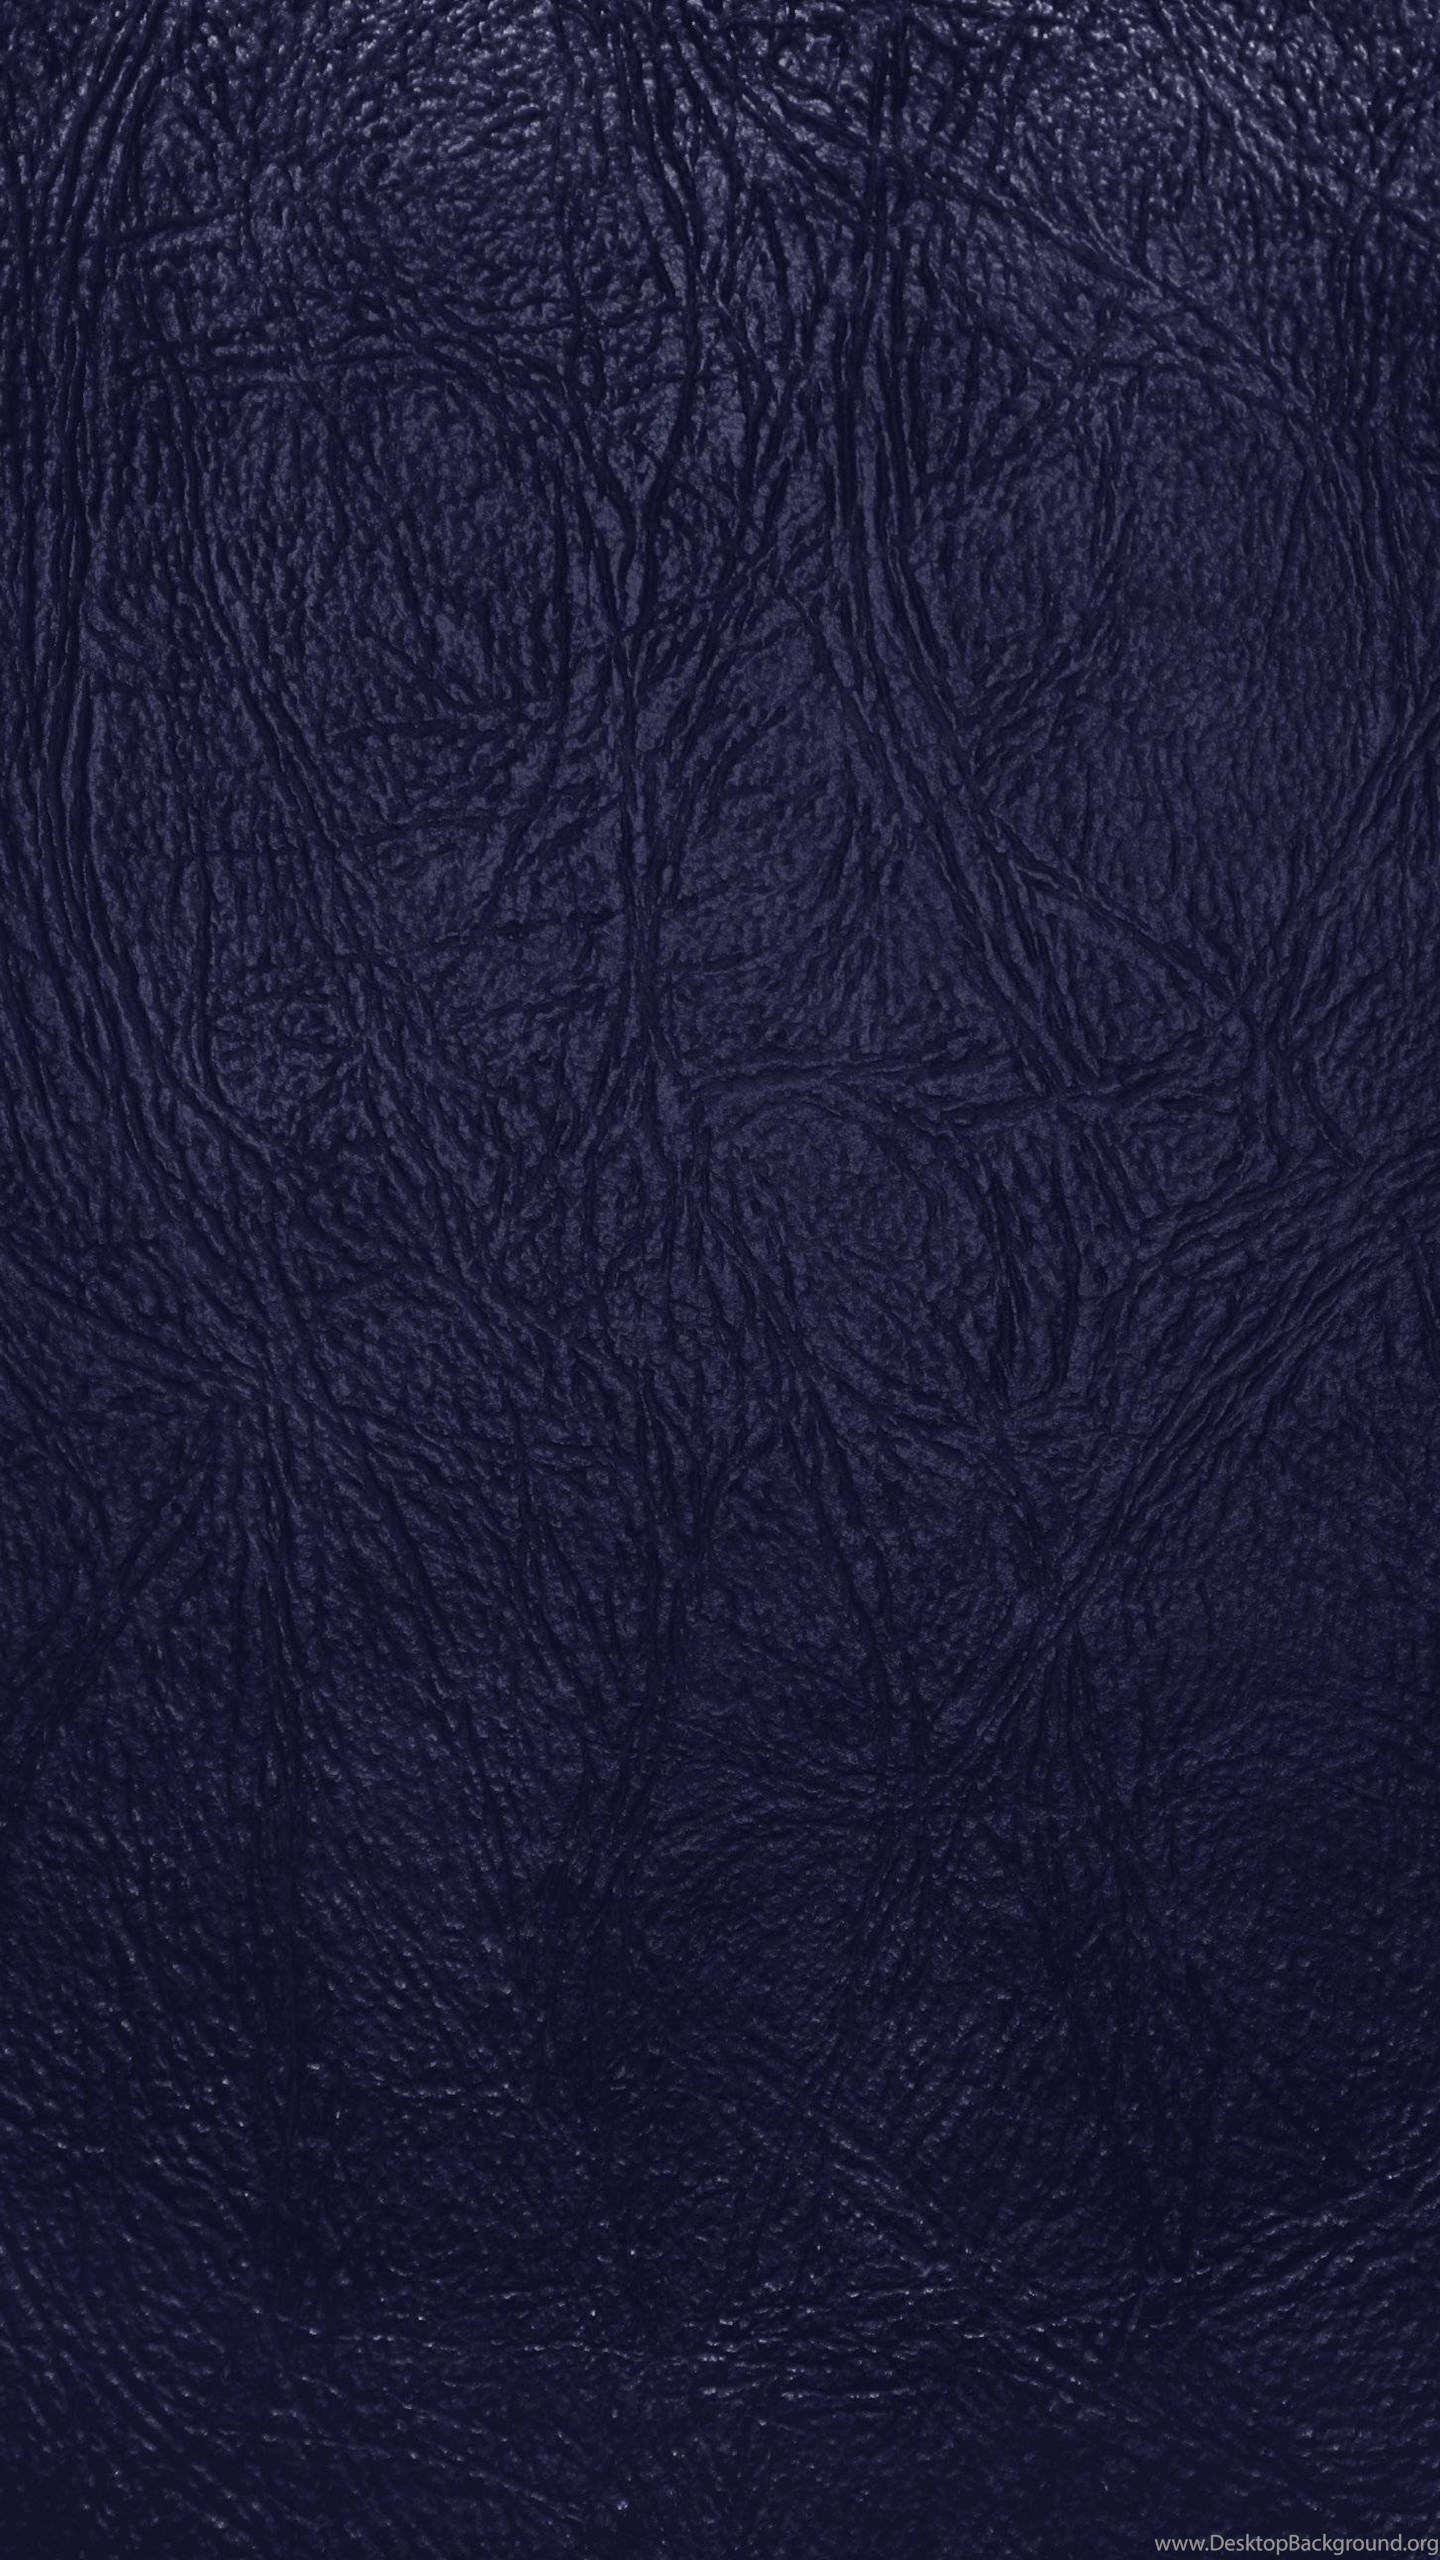 Solid Dark Blue Backgrounds Wallpapers Abstract Wallpapers Localwom Desktop Background